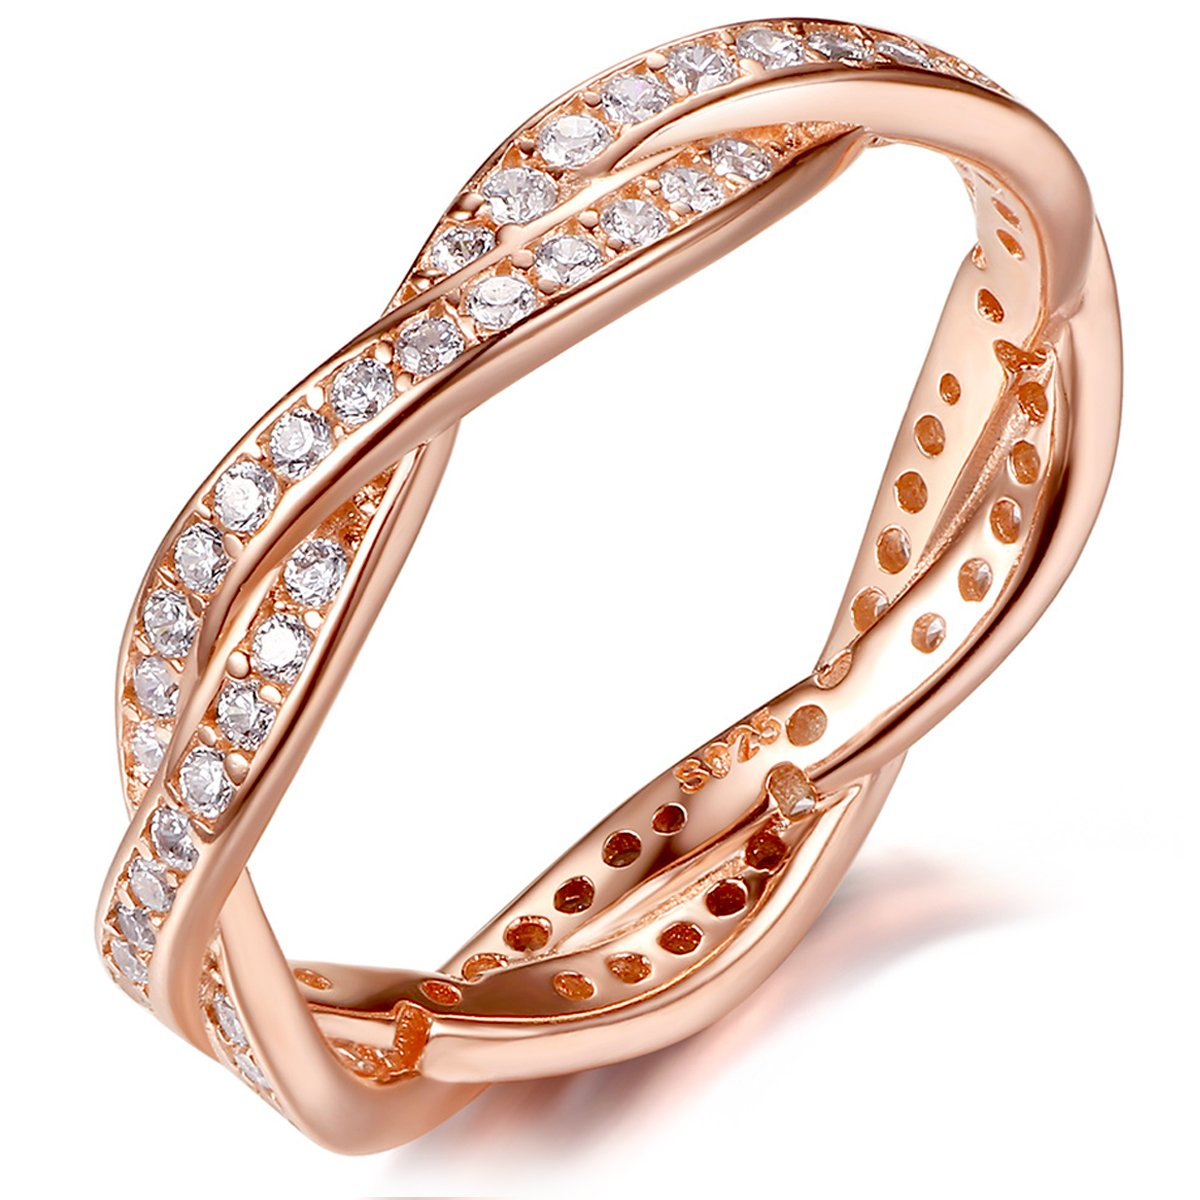 Presentski 925 Sterling Silver Rose Gold-plated Engagement Wedding Rings with Cubic Zirconia By